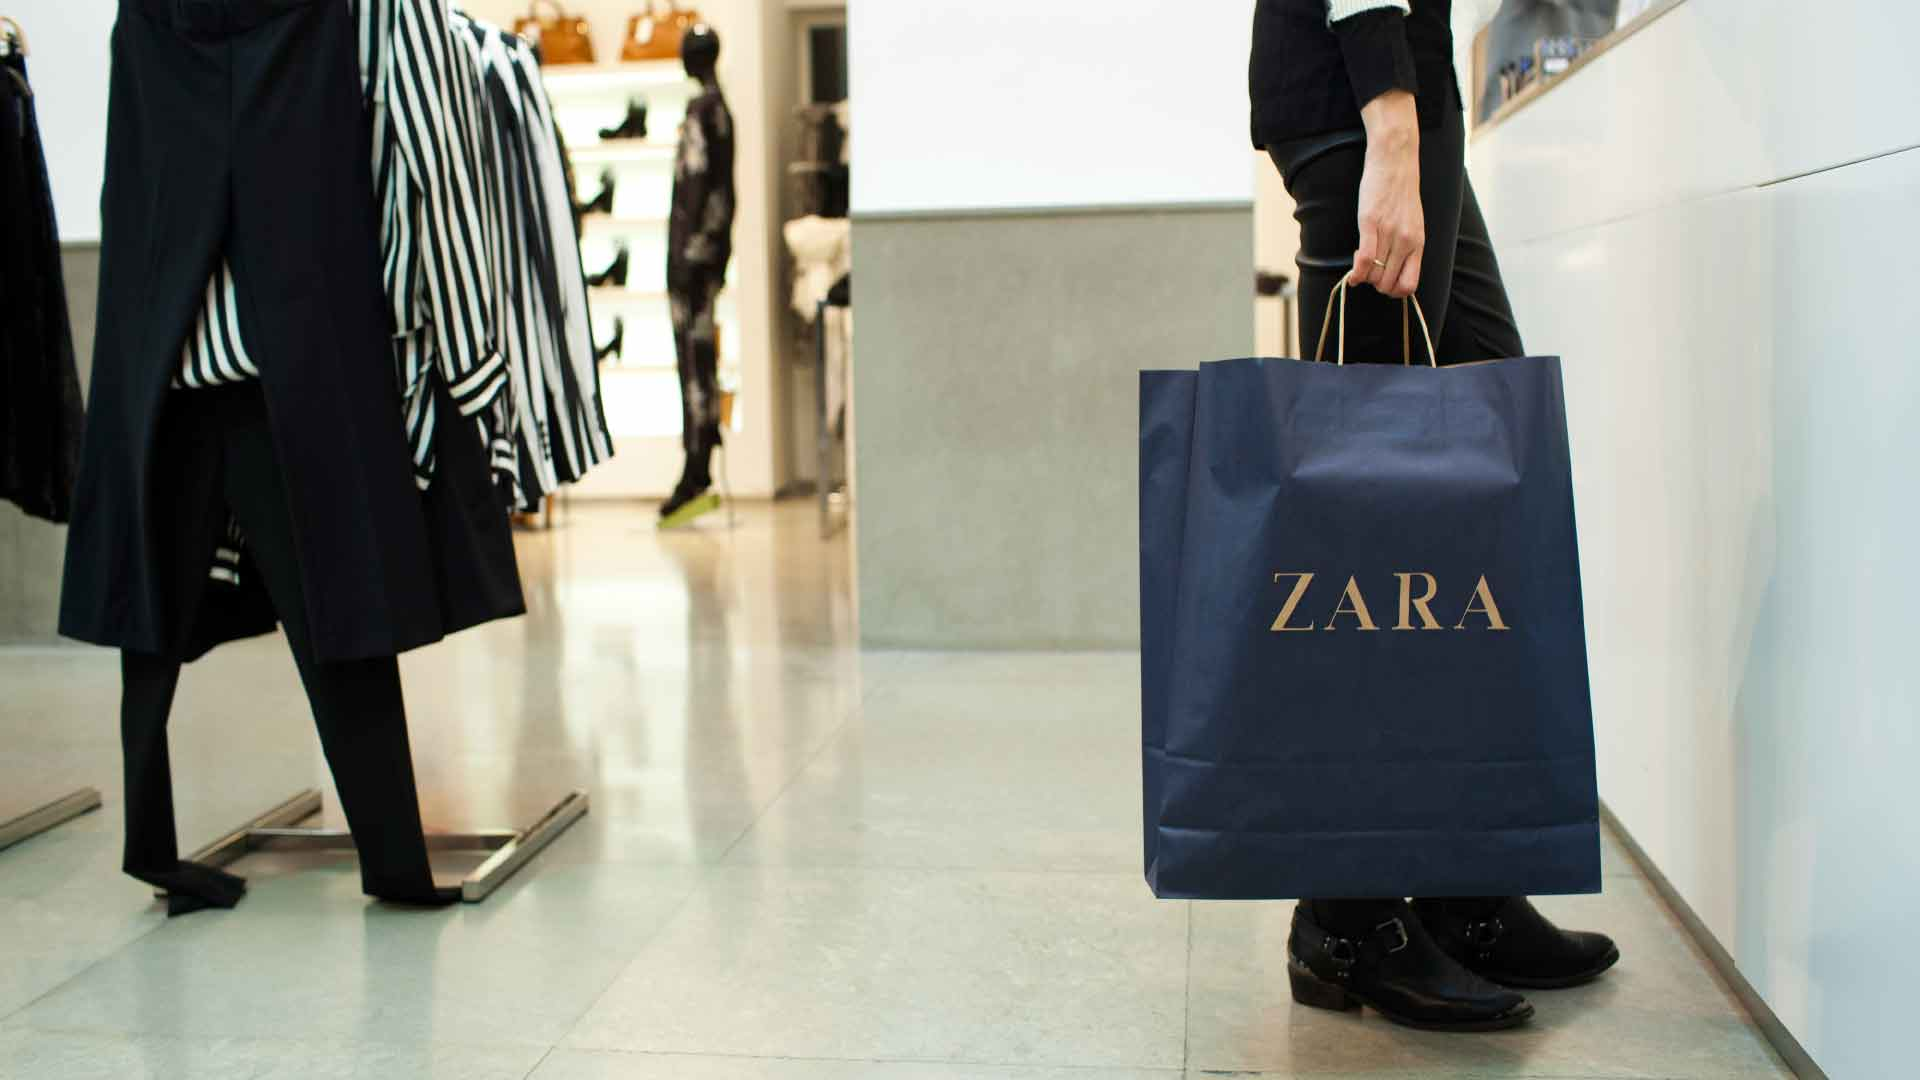 ZARA | Sentiment analysis su Facebook